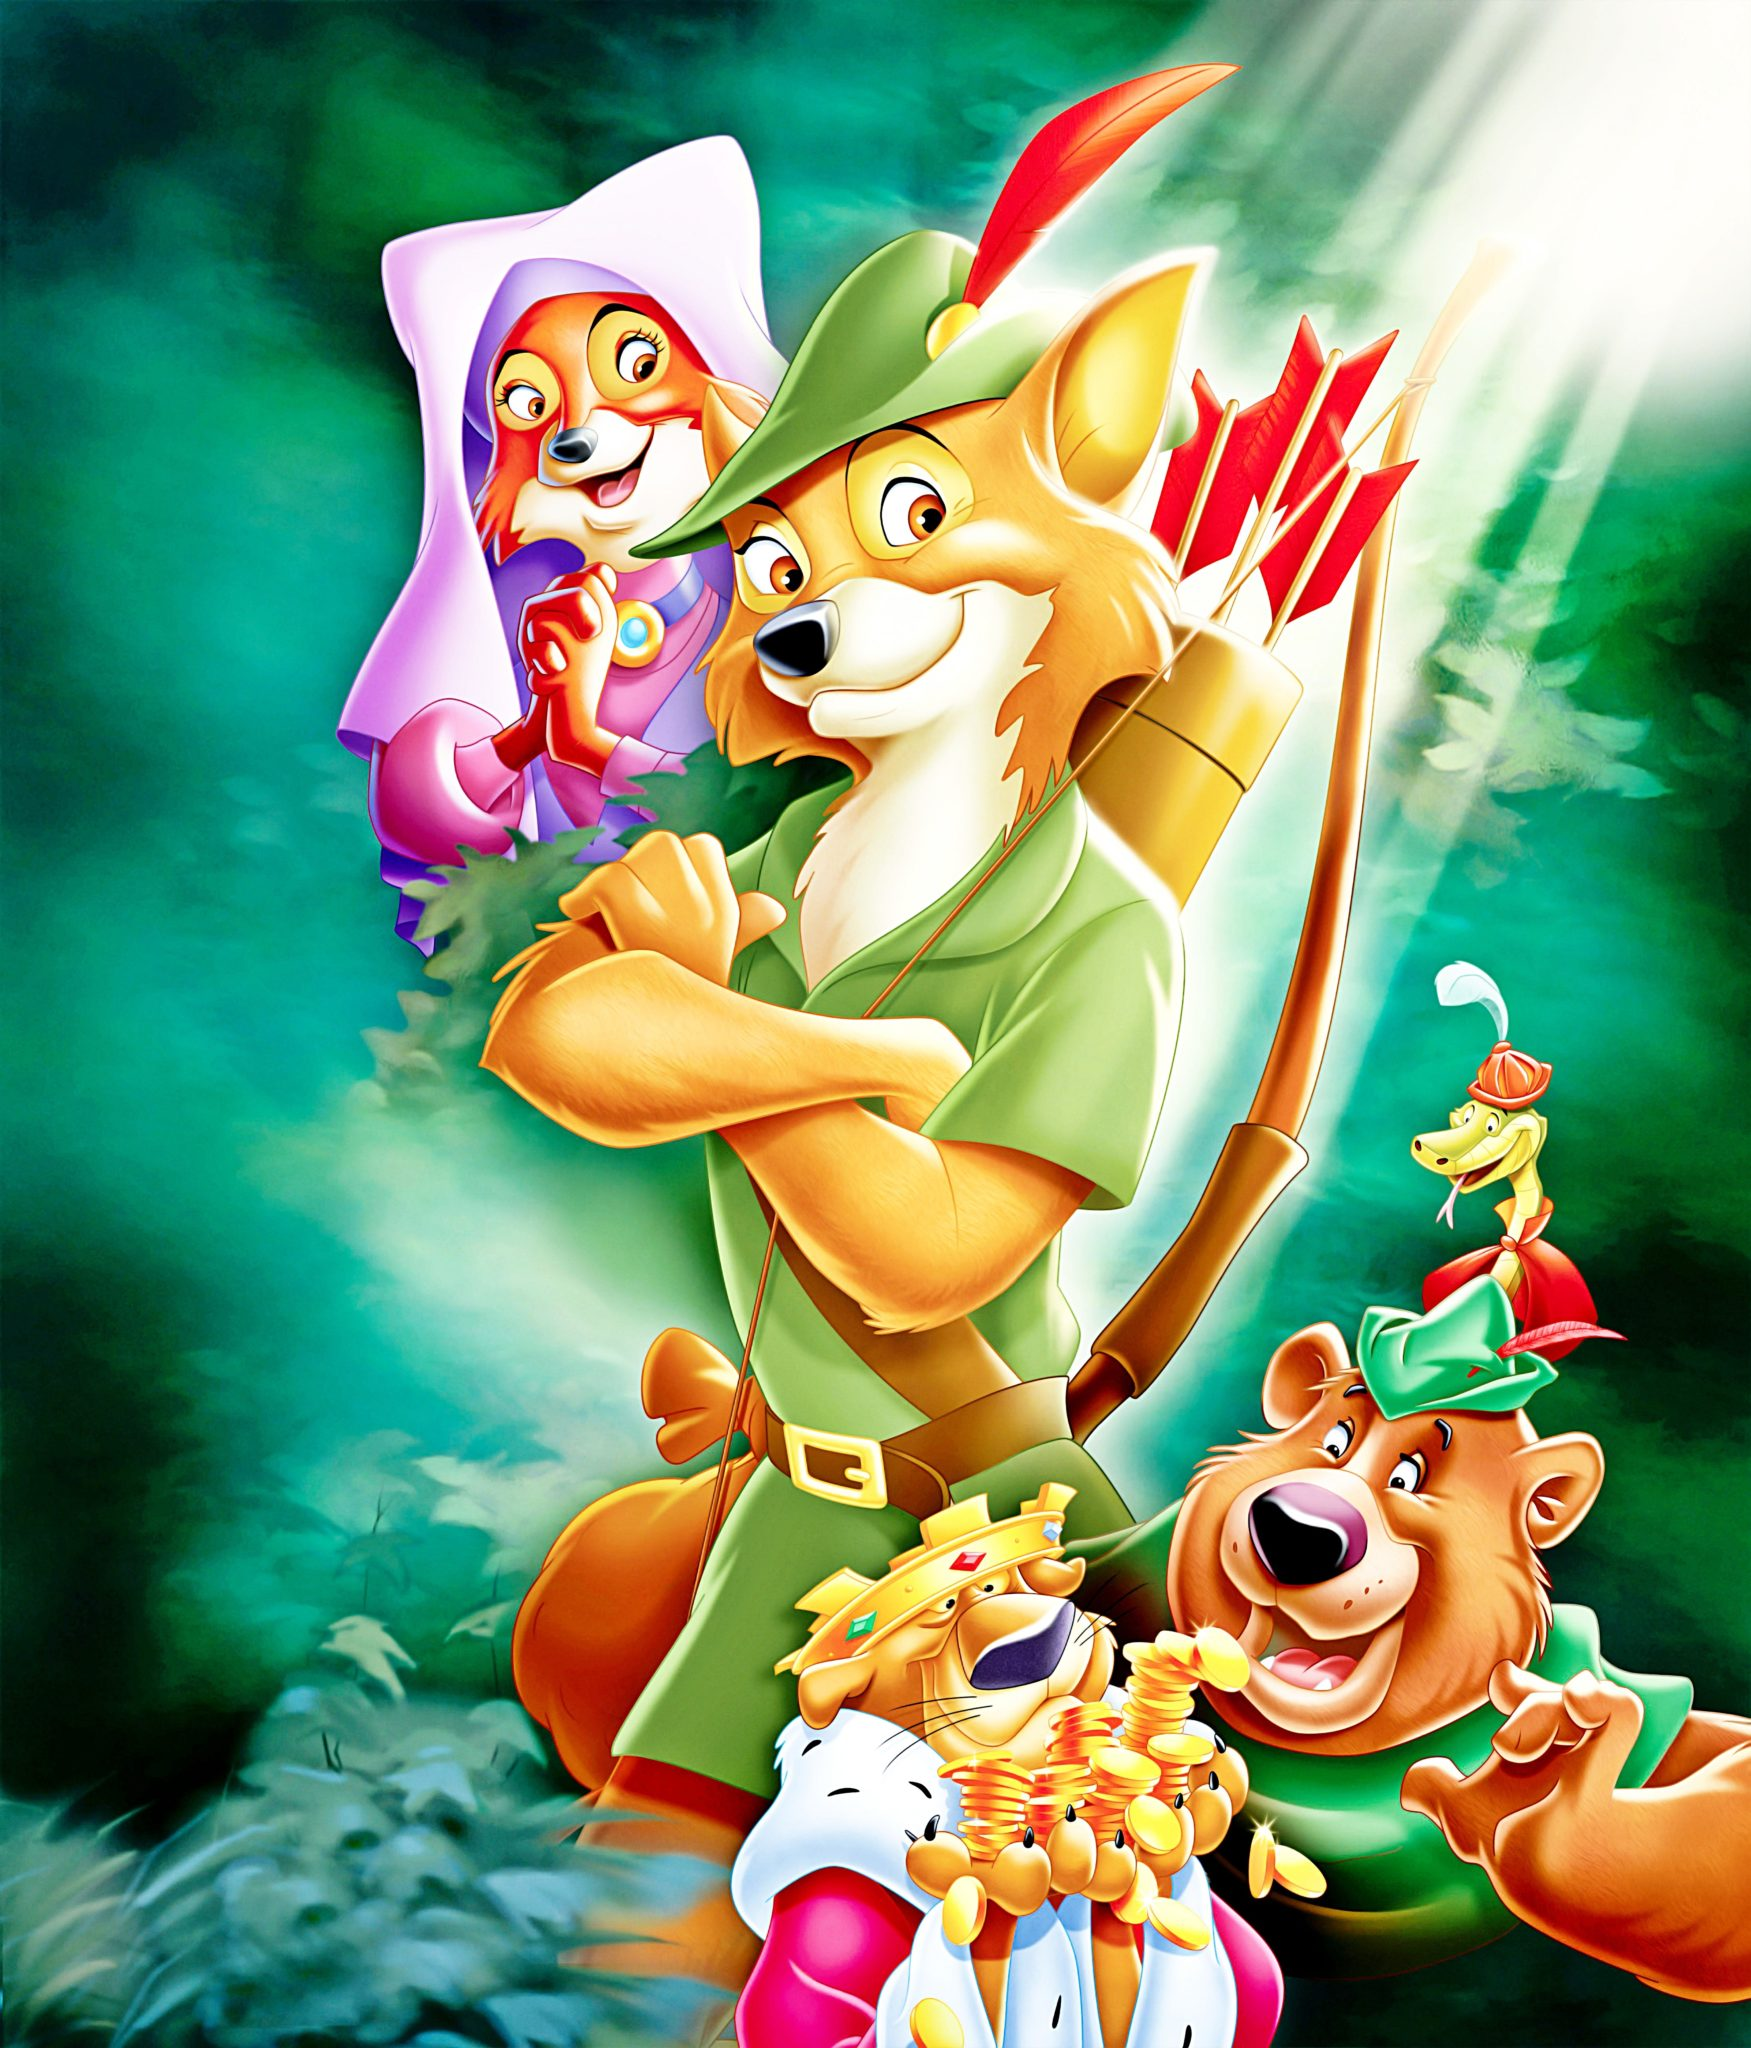 Disney: 10 Overly Underrated Disney Classic Films